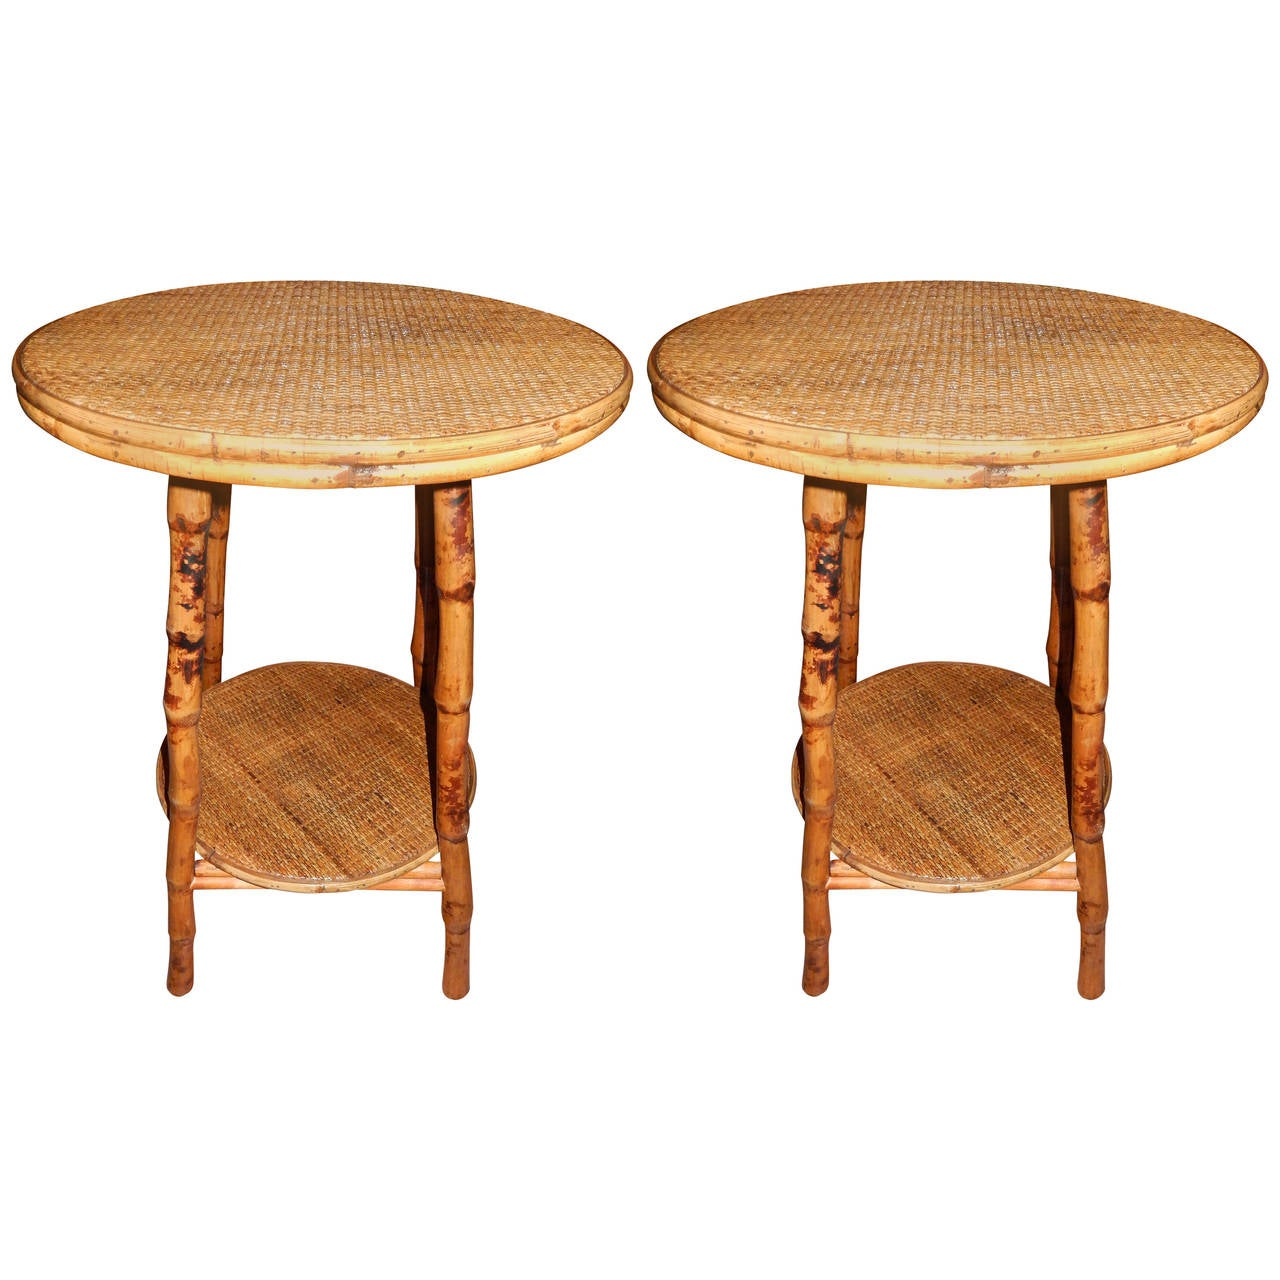 Pair of west indian bamboo and cane side tables at 1stdibs for Bamboo side table